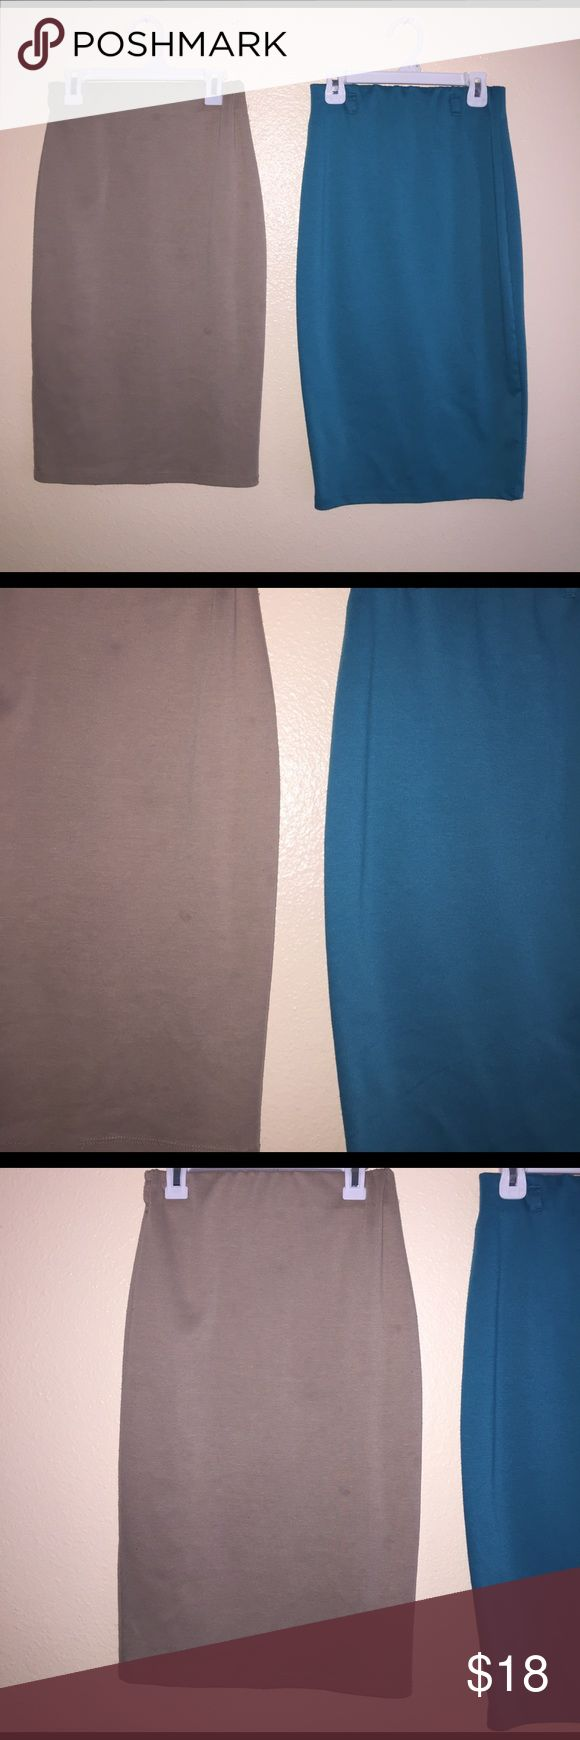 2 pencil skirts Stretchy Pencil skirt bundle. Left is tan, right is blue. Has had a lot of use, and has peeling. The blue one has a tiny hole in the front Skirts Pencil